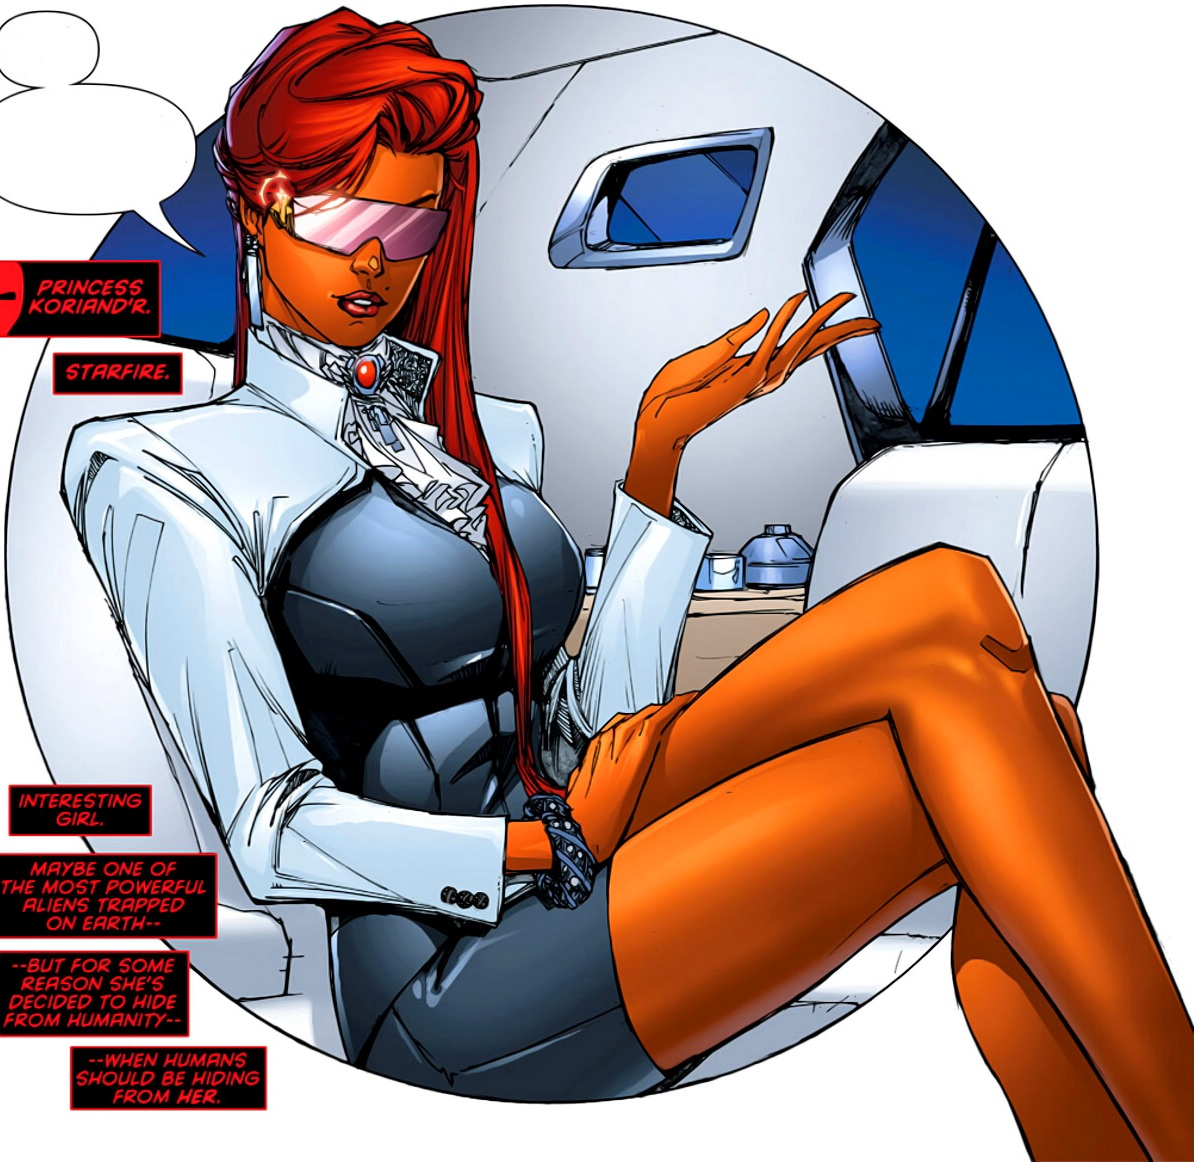 http://images.wikia.com/marvel_dc/images/4/41/Starfire_010.jpg